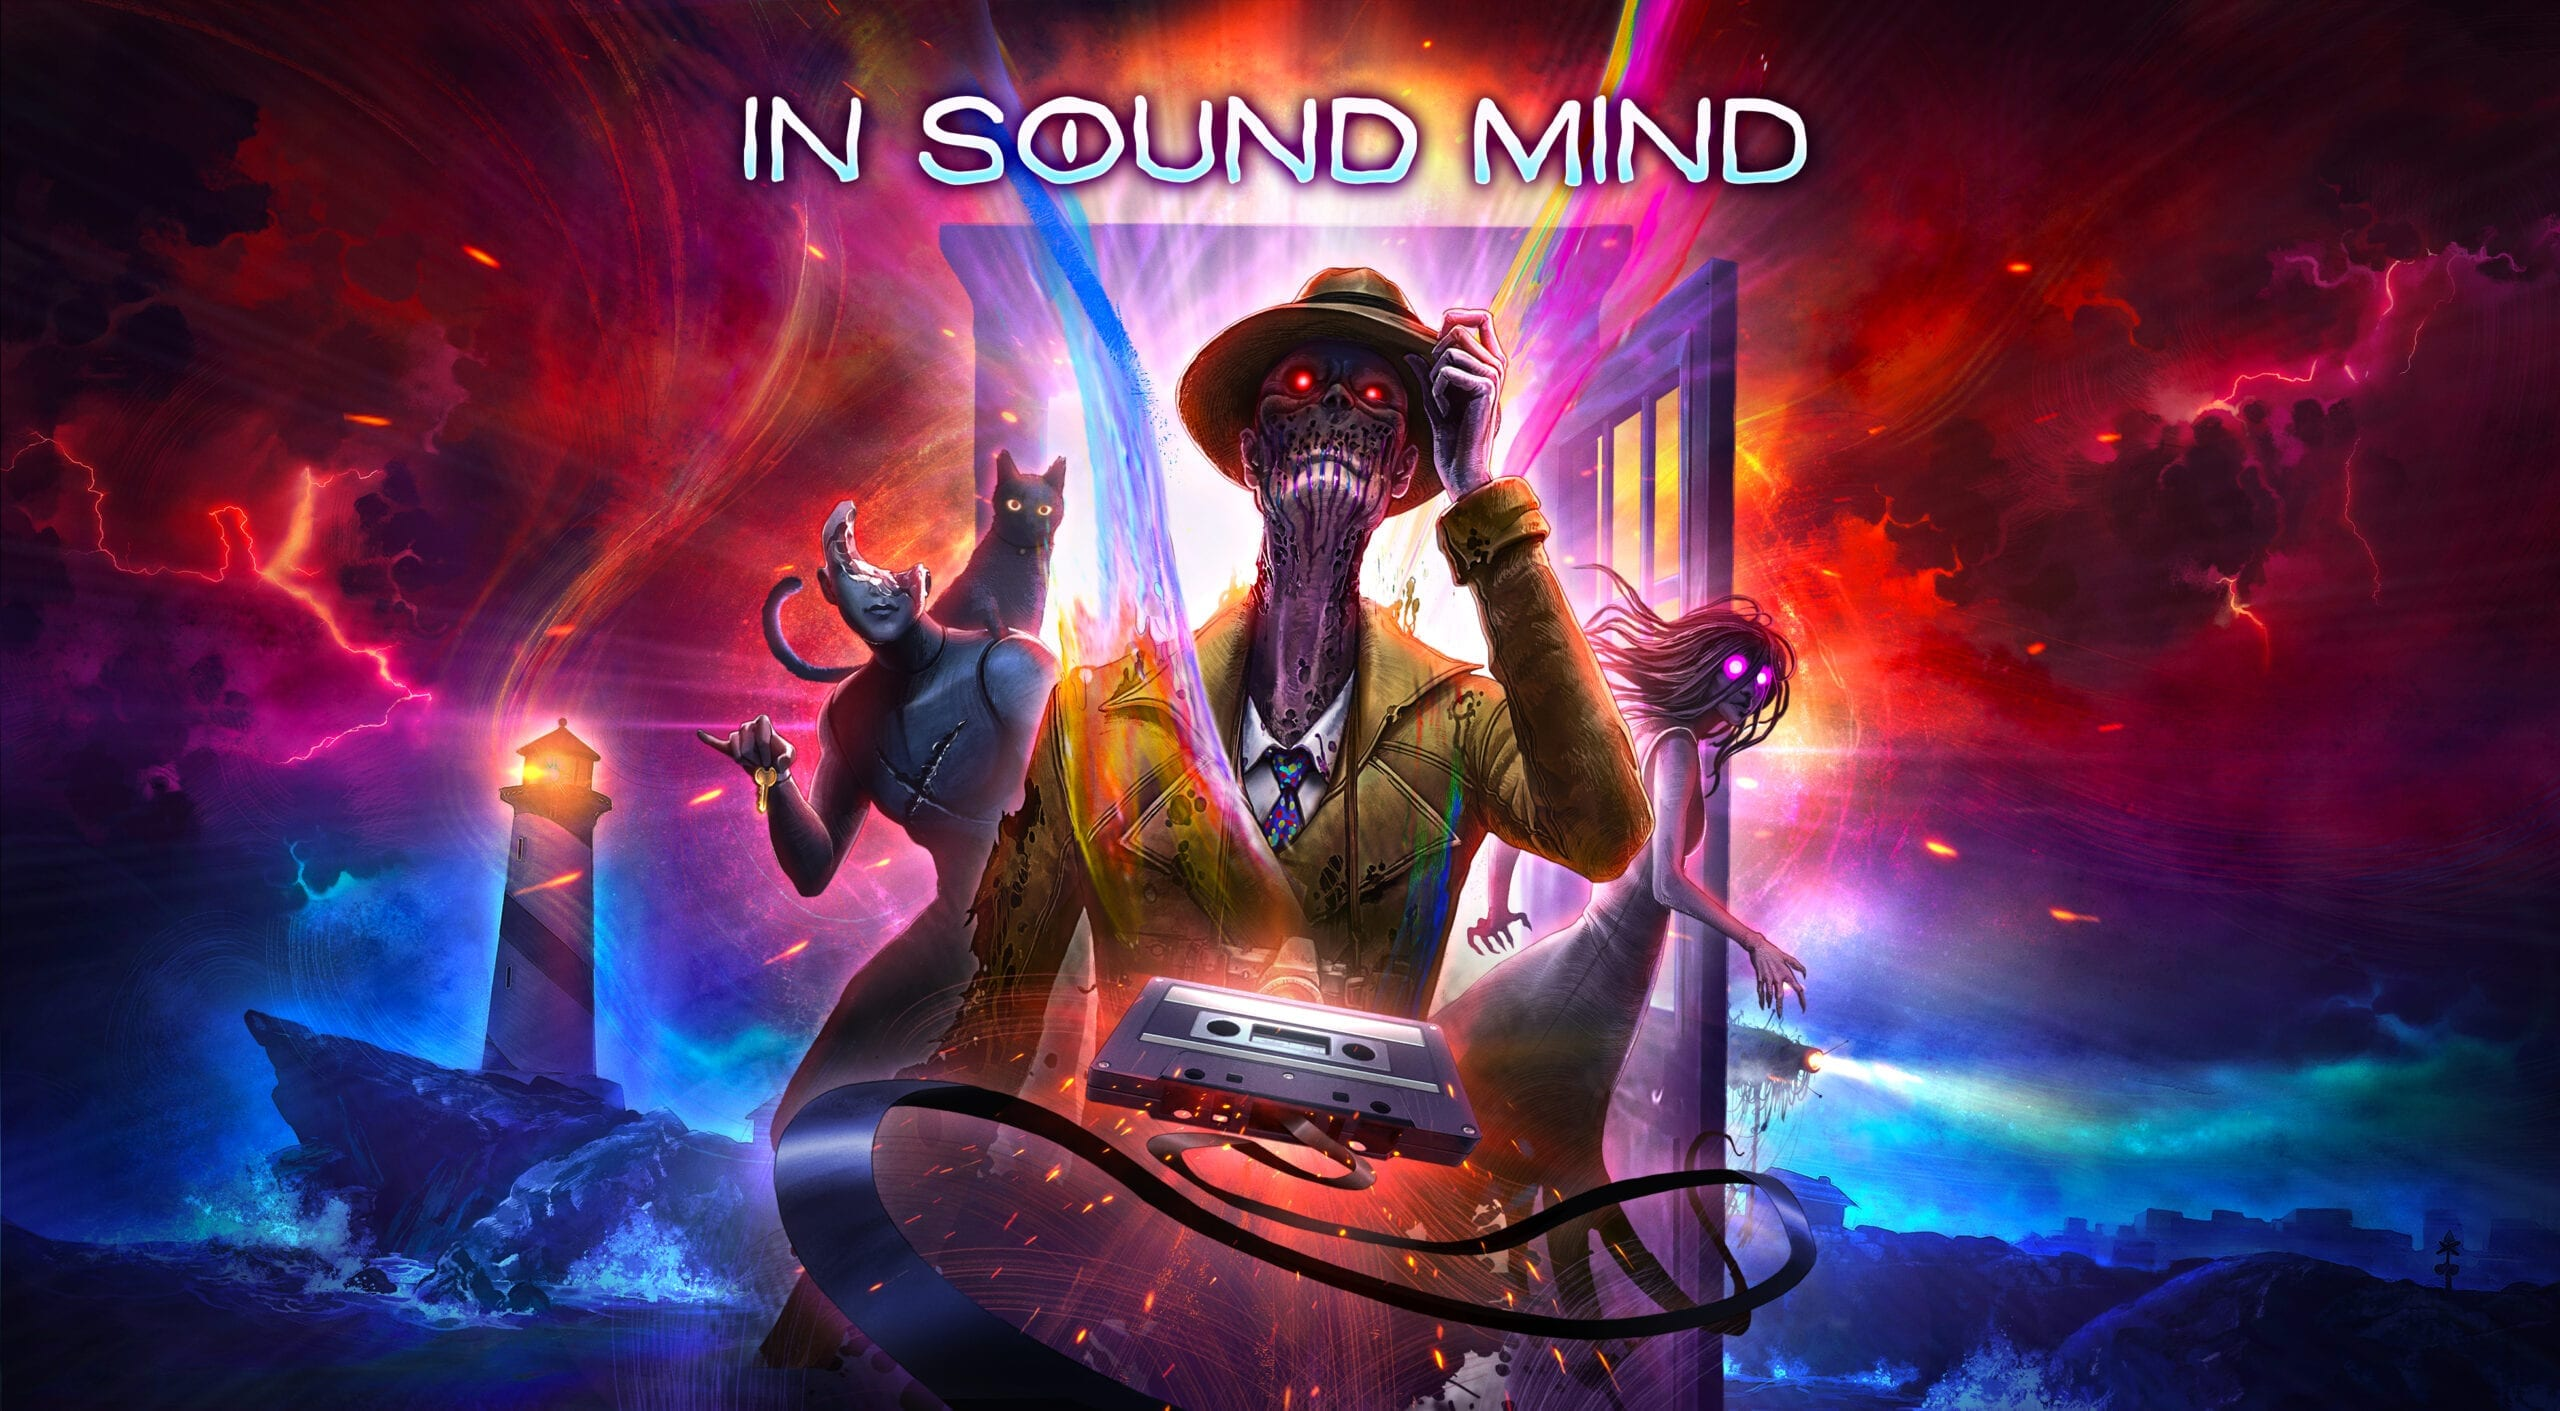 GameByte Preview: A Sneak Peek At The Horror Of 'In Sound Mind'